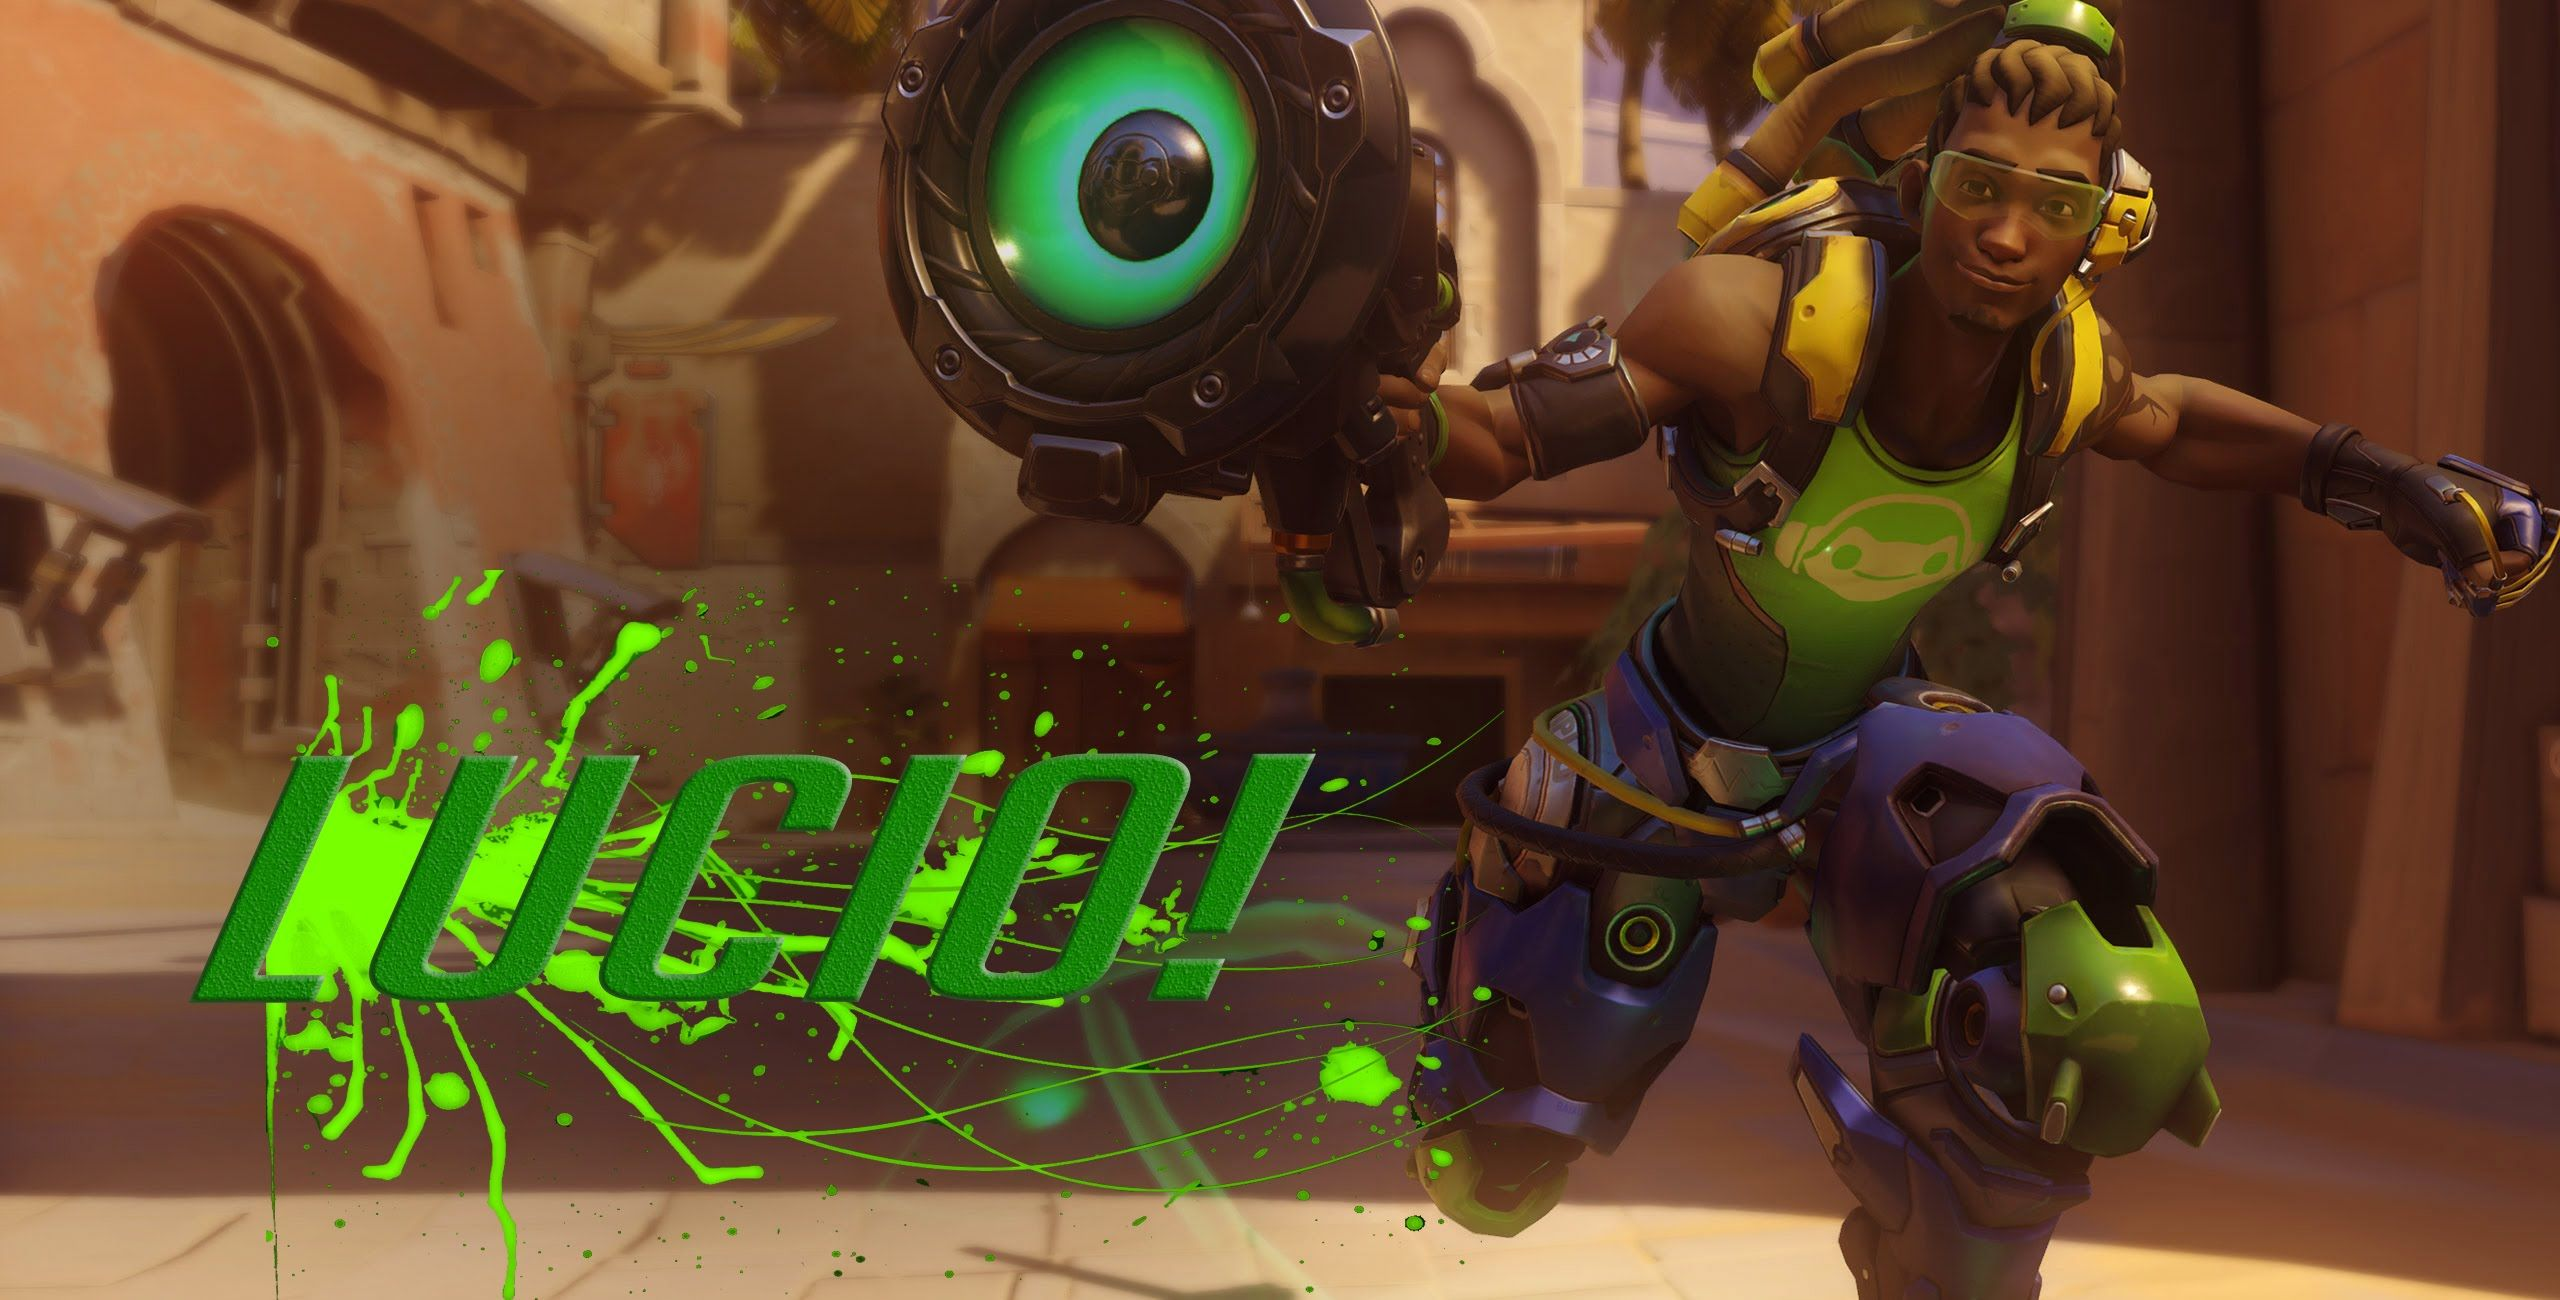 DERPY POTATO! OVERWATCH PLAYS LUCIO FOR THE FIRST TIME